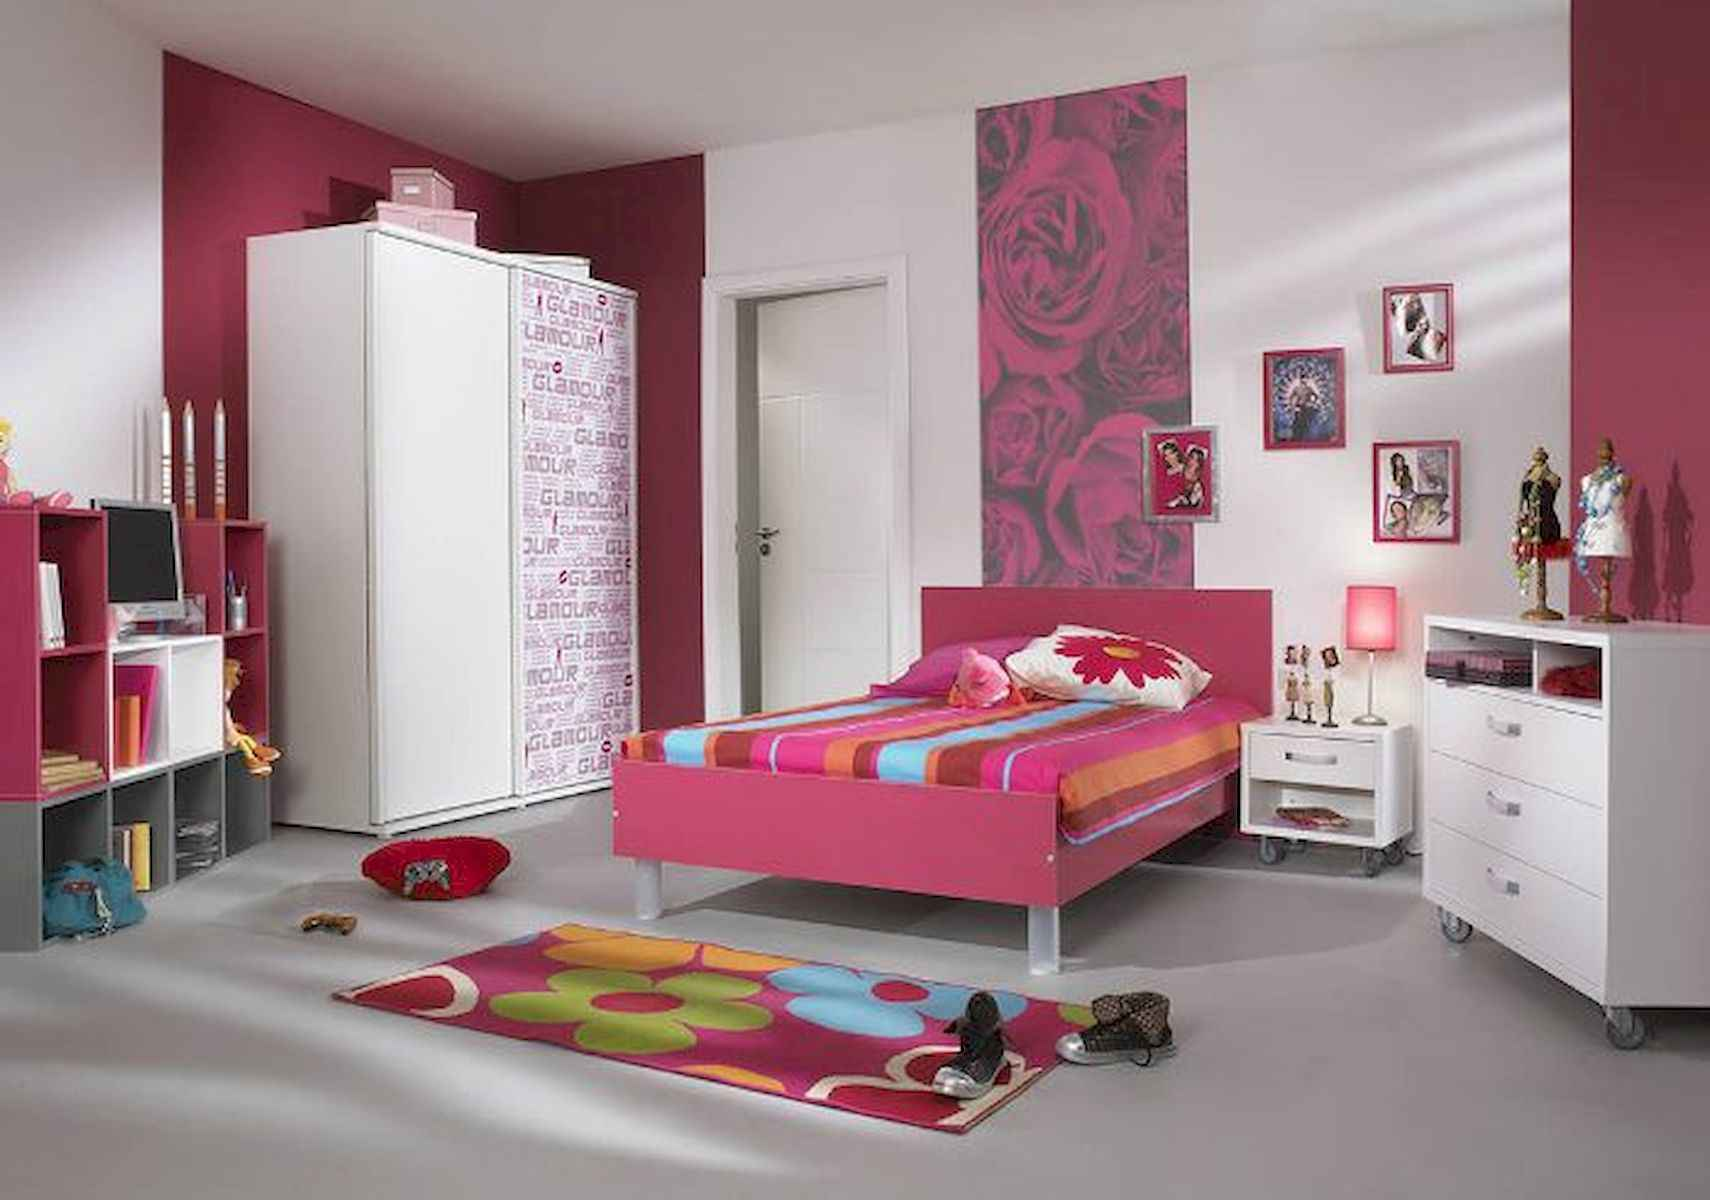 60 Gorgeous College Dorm Room Decorating Ideas And Makeover (47)